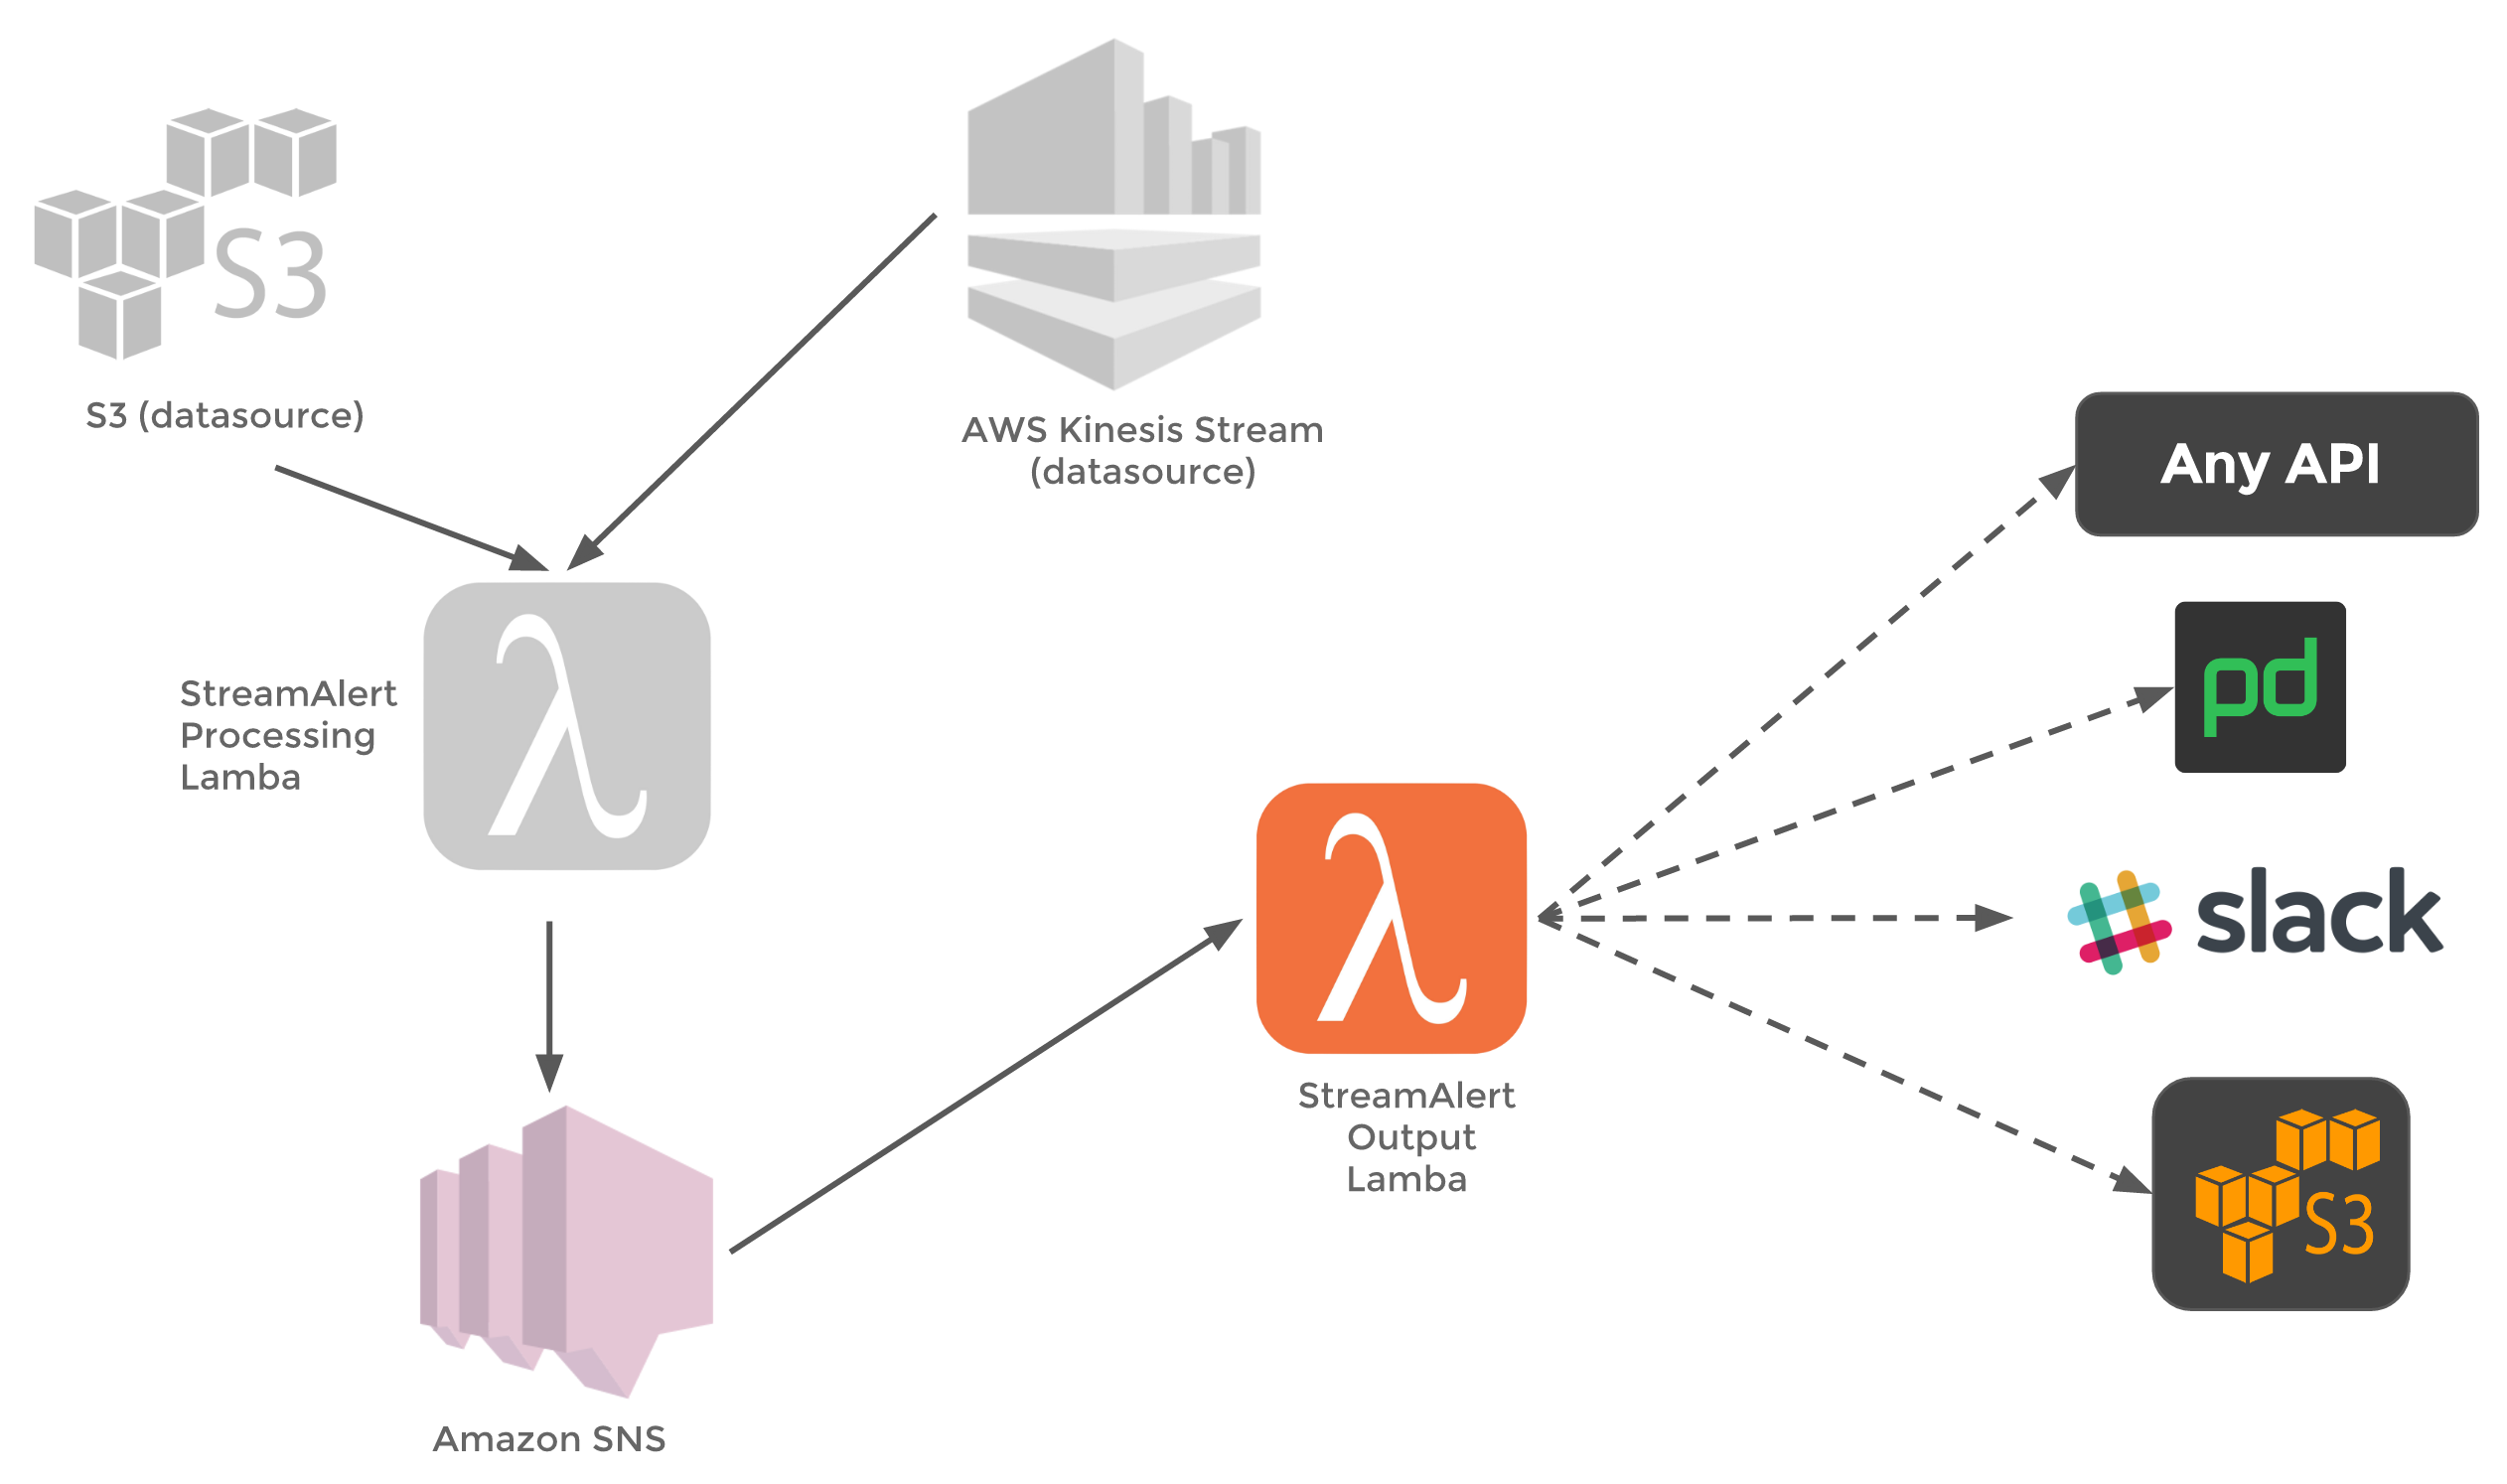 StreamAlert: Real-time Data Analysis and Alerting - Airbnb